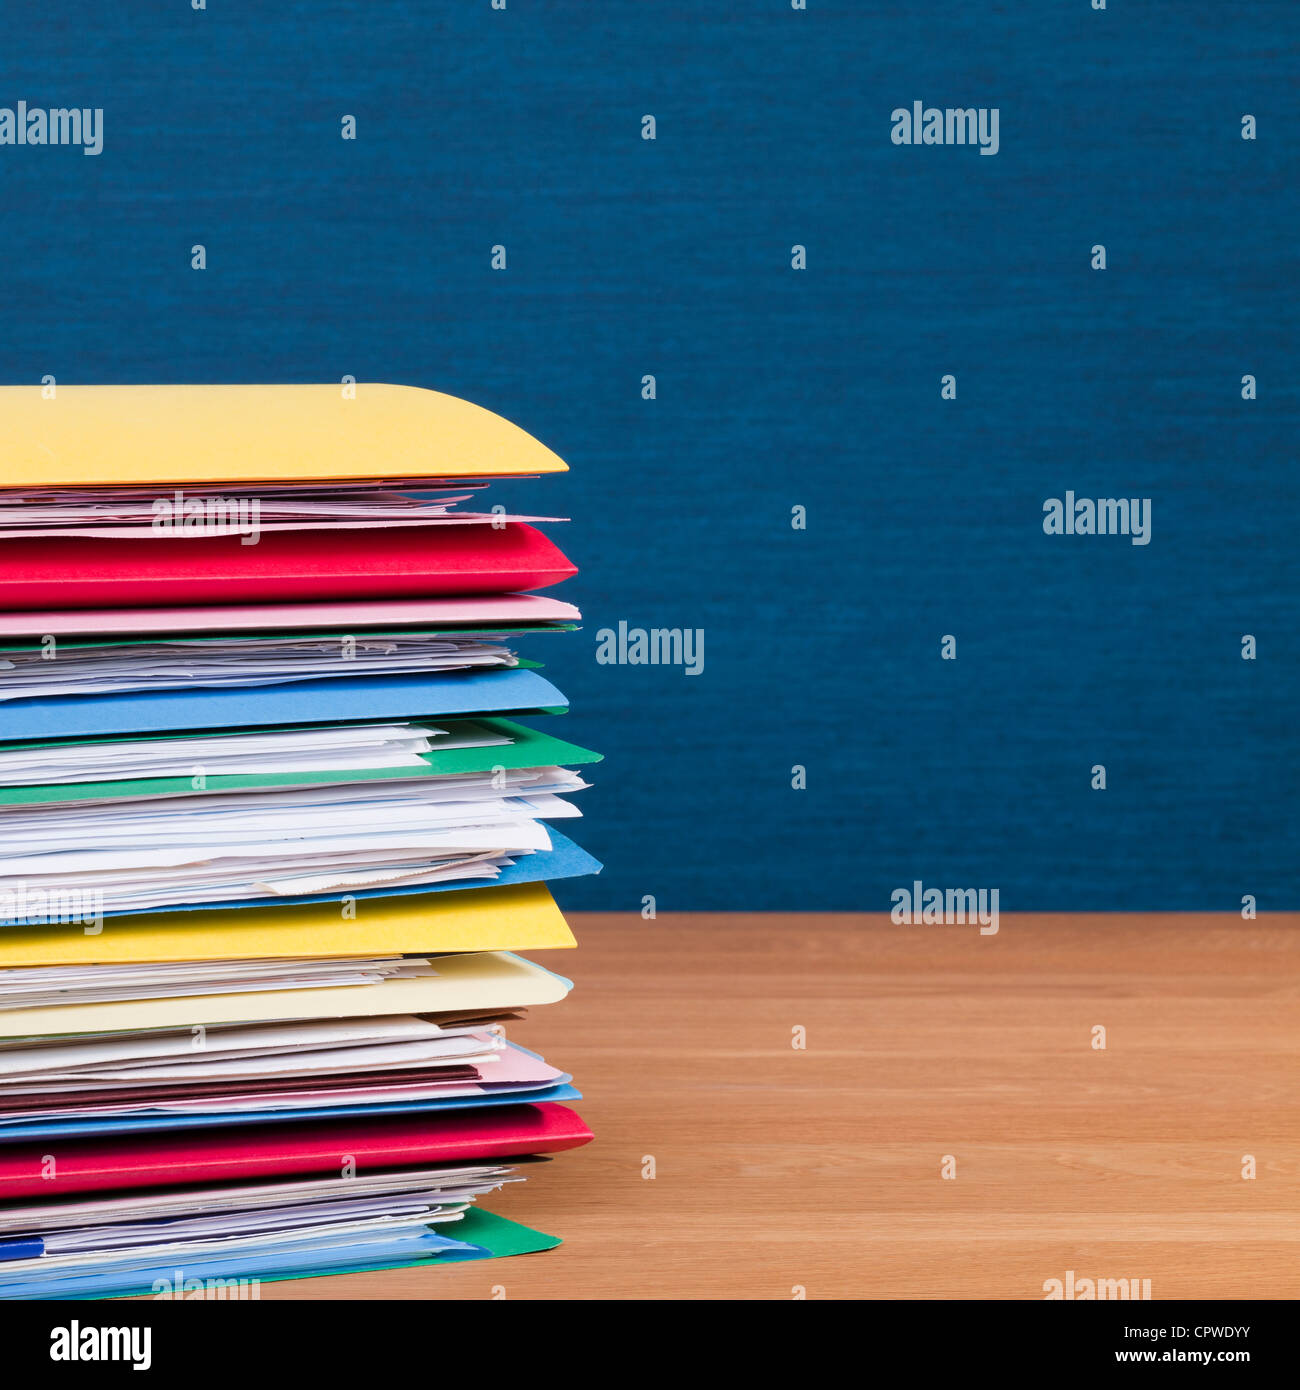 Tall stack of files full of paperwork, on a wooden surface with a blue wall behind. Copy space. - Stock Image